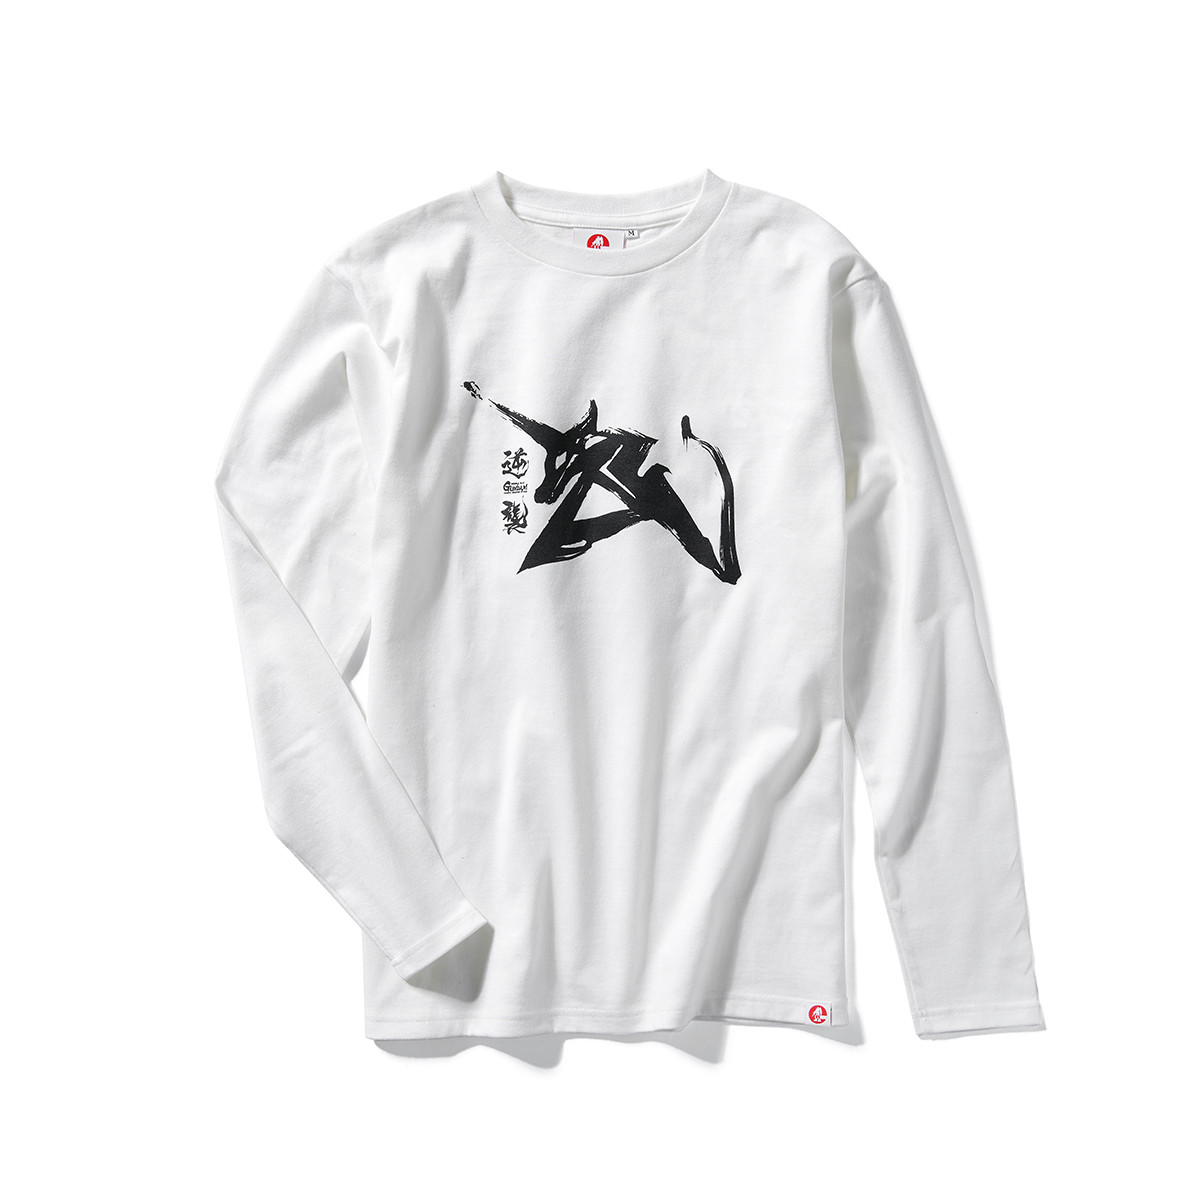 Amuro Ray Emblem Long-Sleeve T-shirt—Mobile Suit Gundam: Char's Counterattack/STRICT-G JAPAN Collaboration